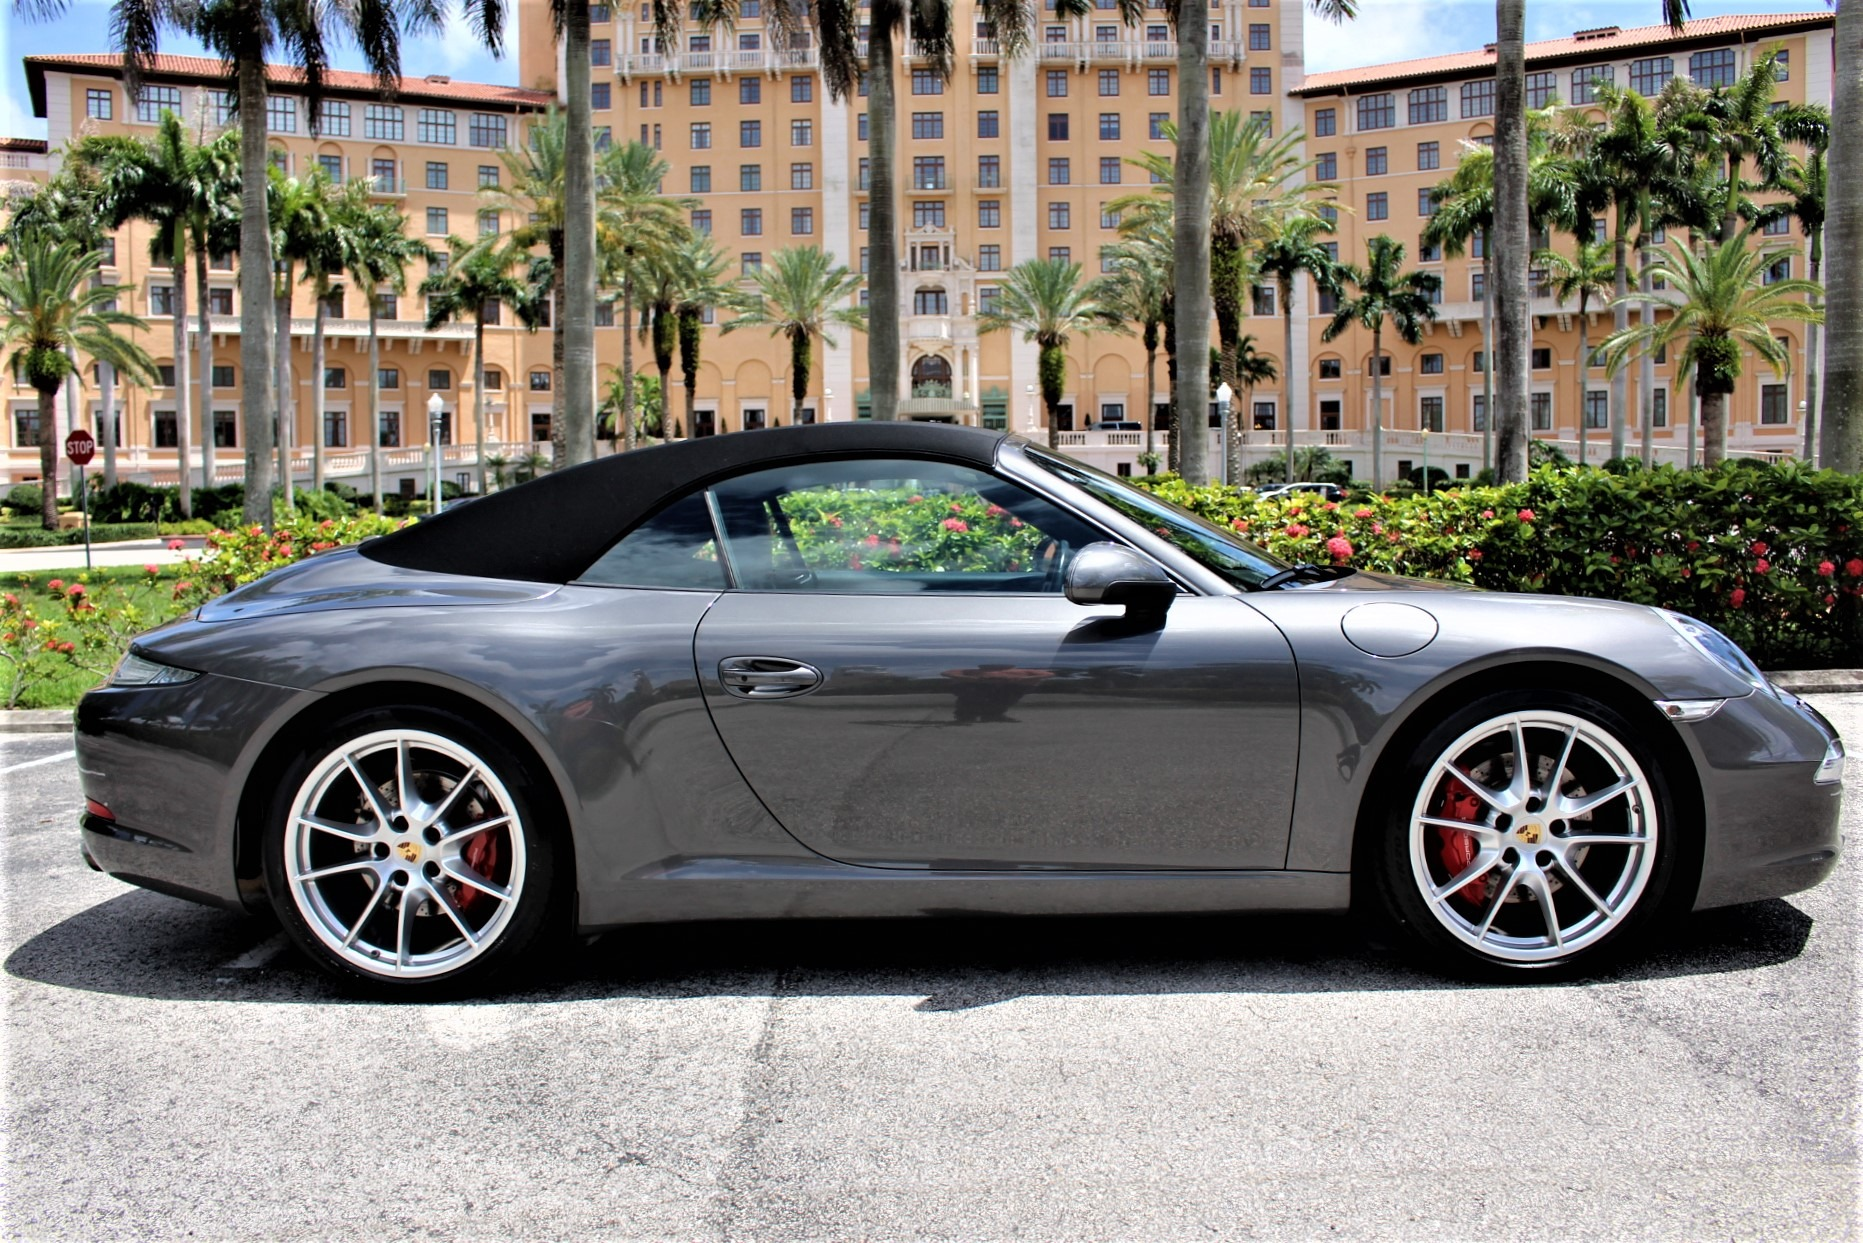 Used 2013 Porsche 911 Carrera S for sale Sold at The Gables Sports Cars in Miami FL 33146 2